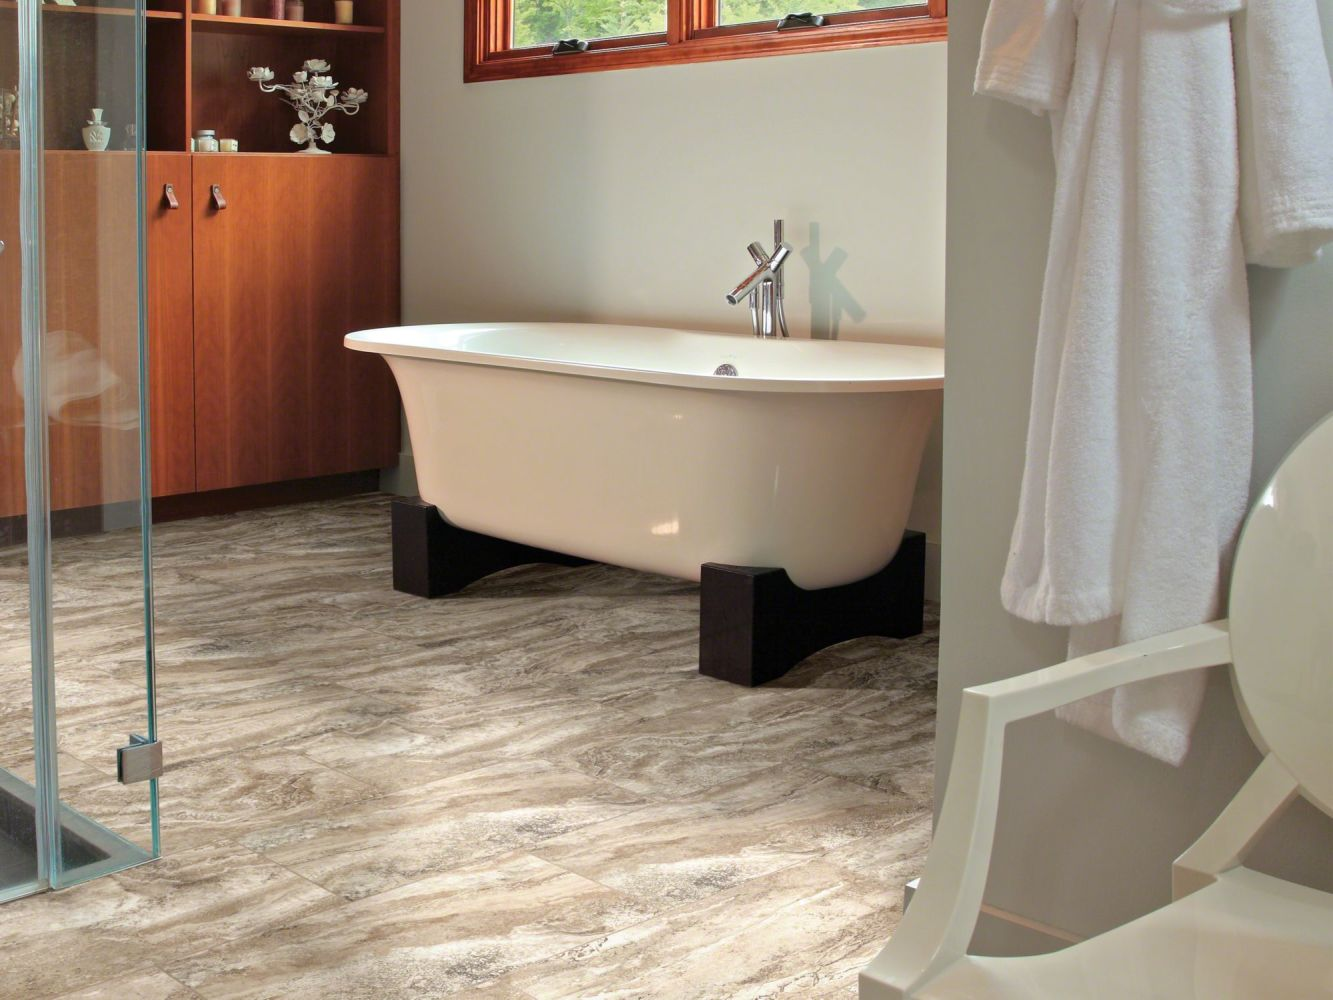 Shaw Floors Vinyl Residential Journey Tile St. Kitts 00708_0494V